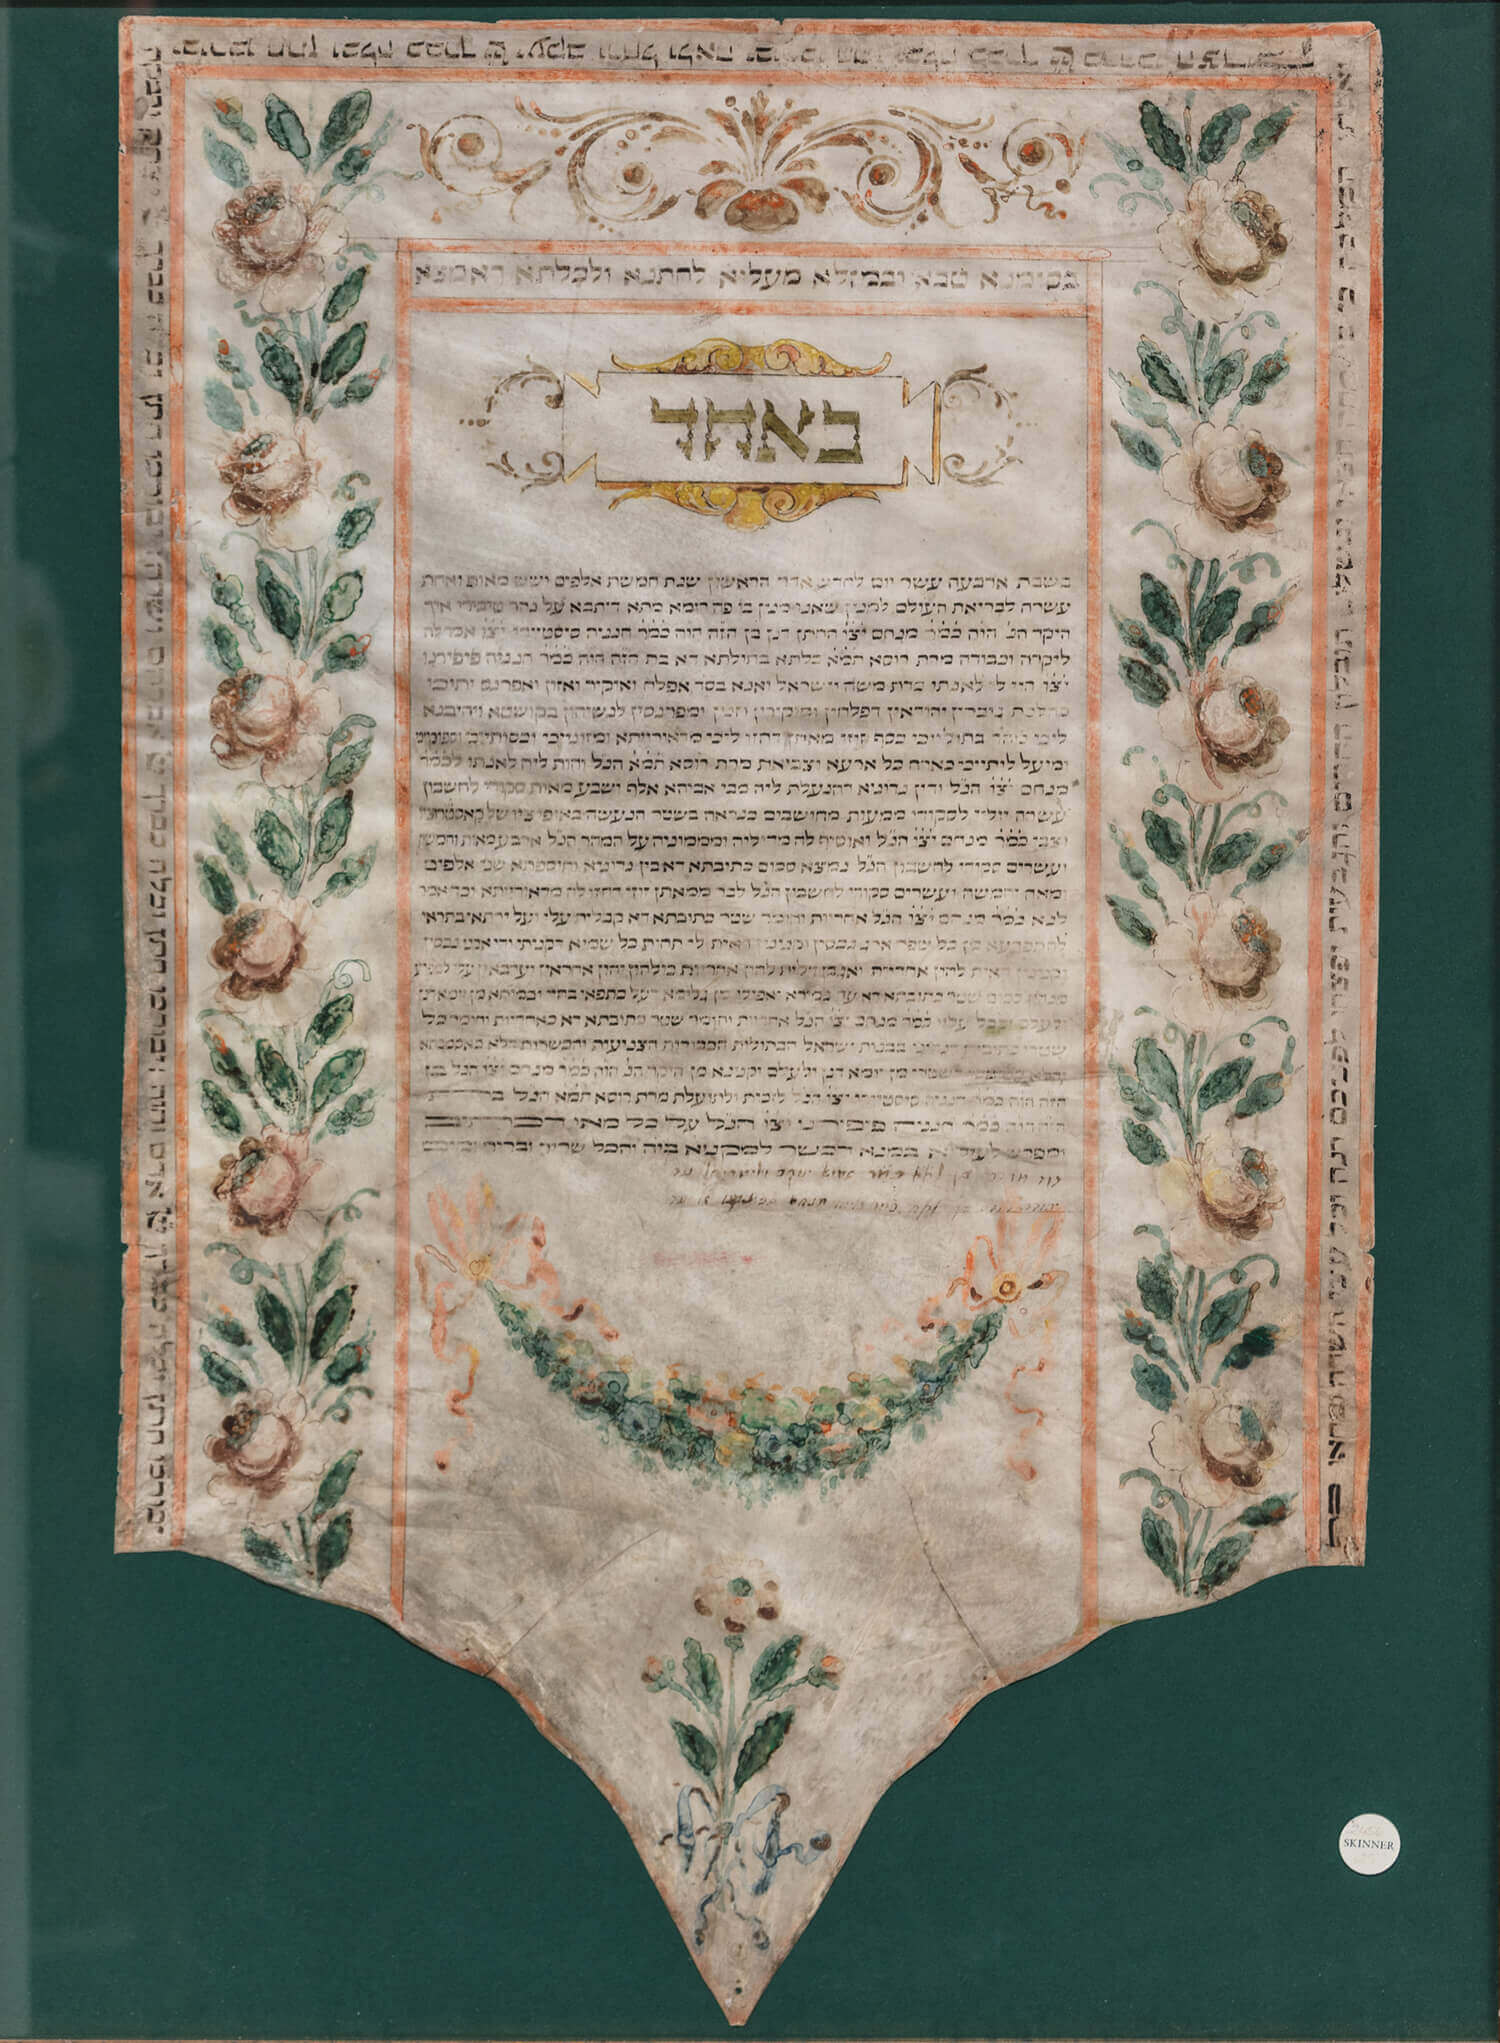 038. AN EARLY MARRIAGE CONTRACT (KETUBAH)